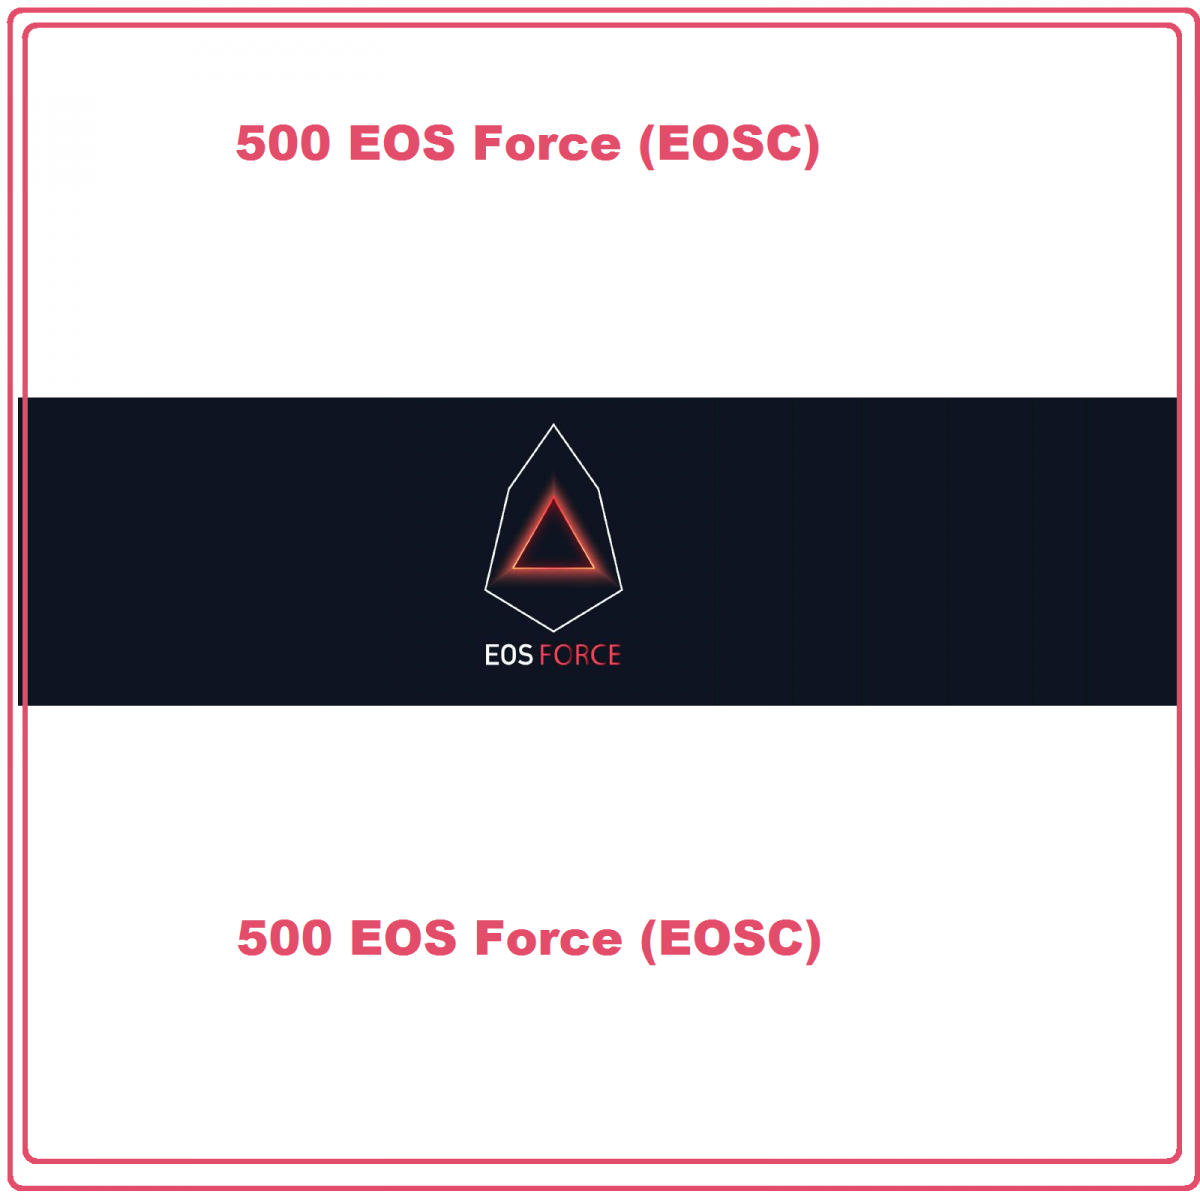 EOS Force (EOSC) 500 Rental Device